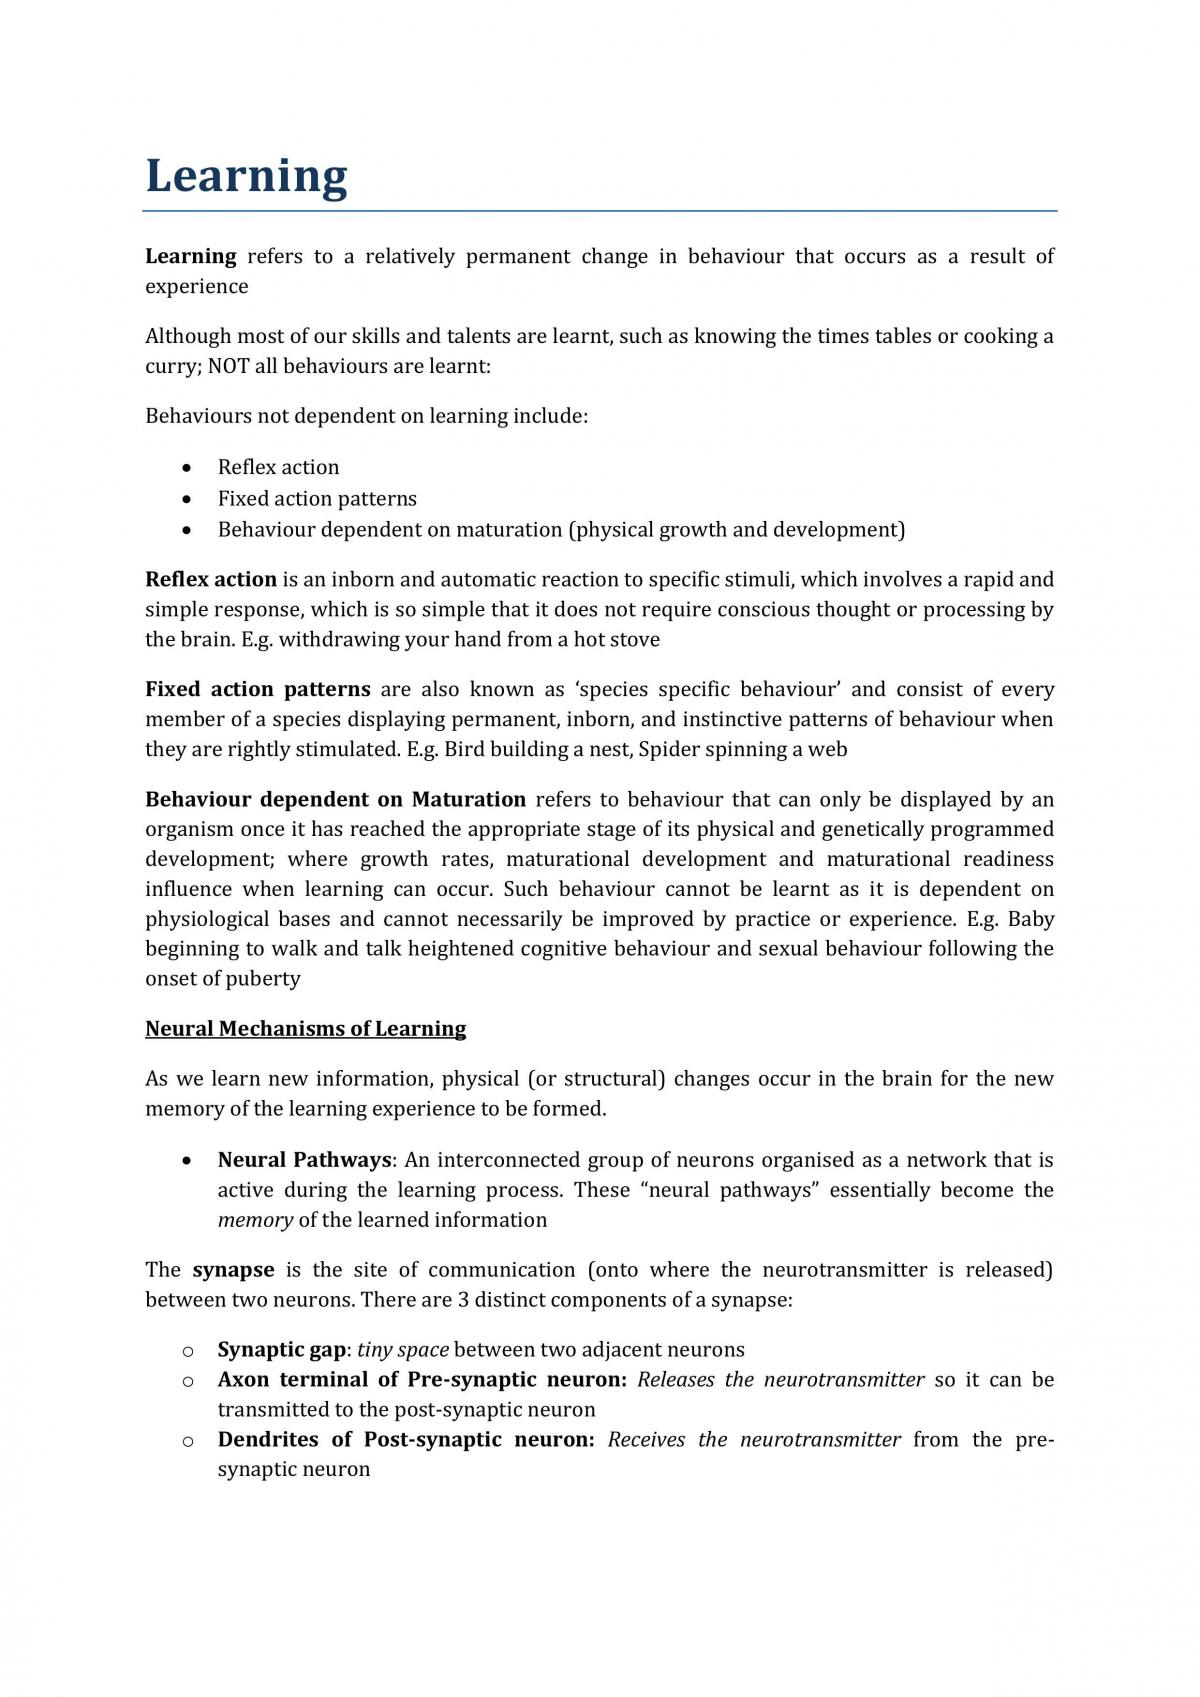 Psychology Learning notes - Page 1